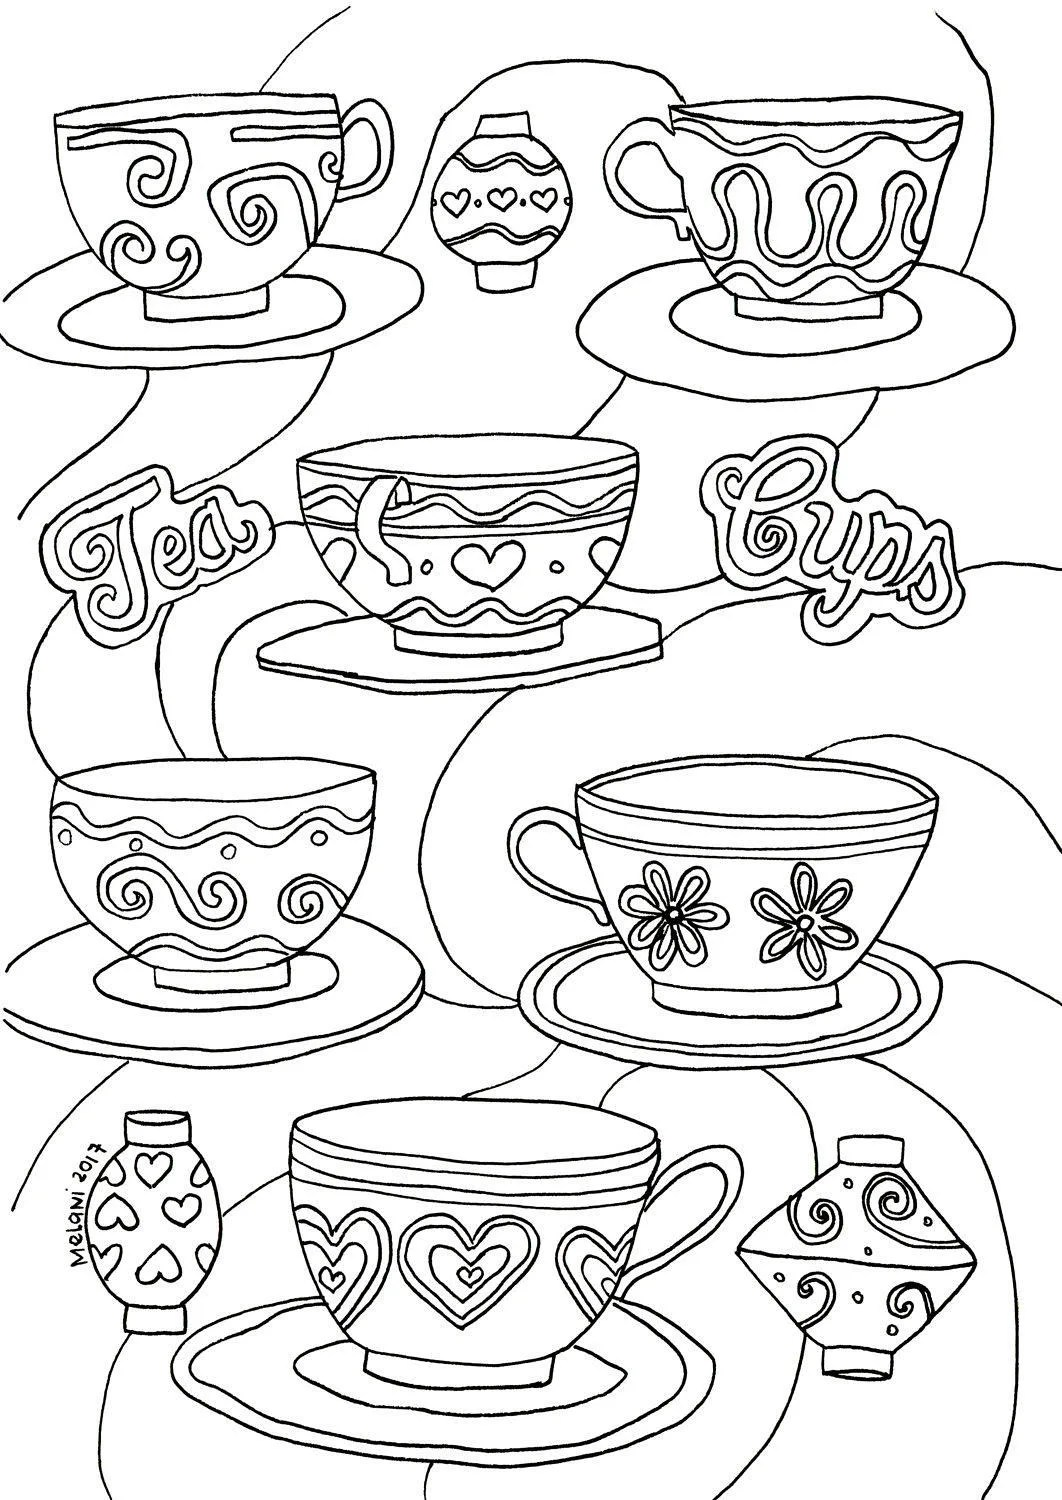 Disney inspired Disney Coloring Page Downlaod Mad Hatters